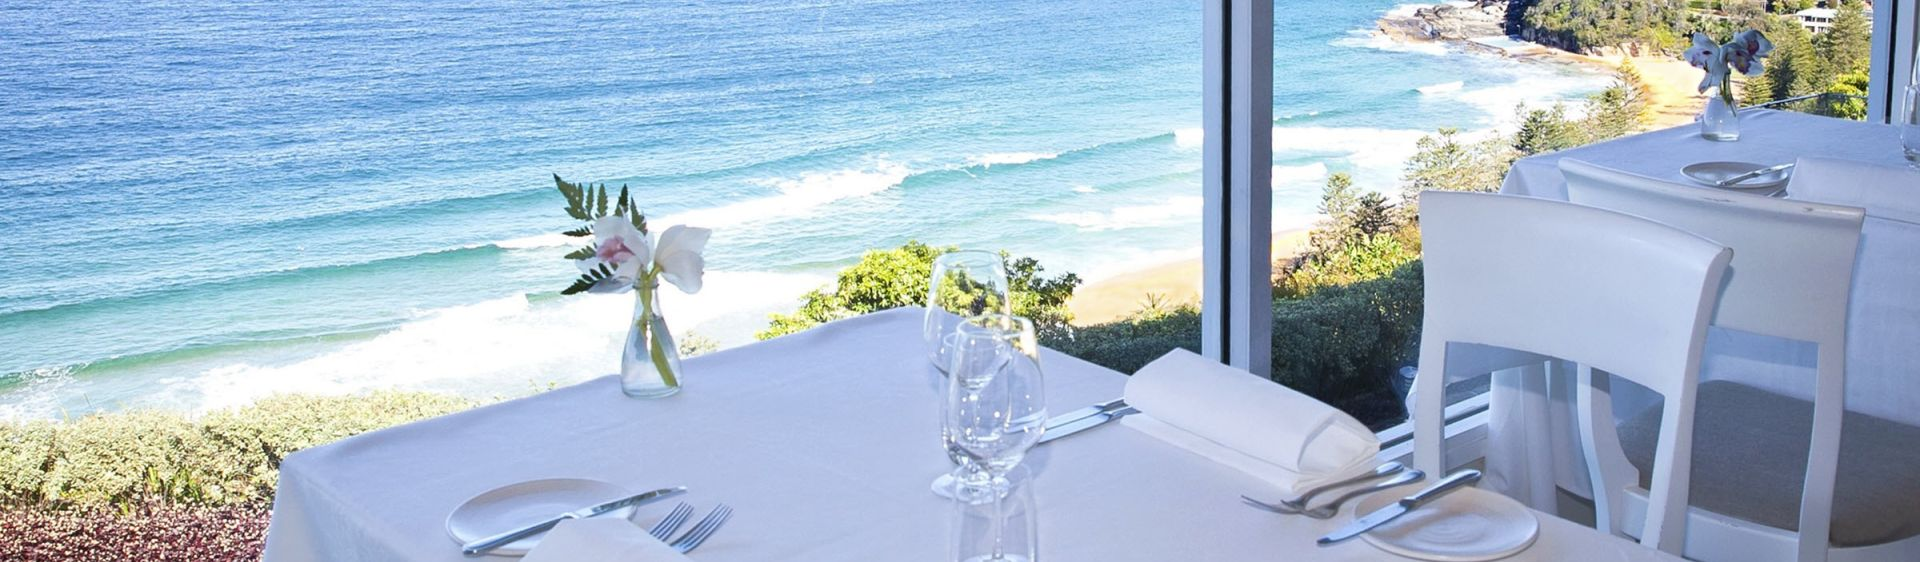 Jonah's Restaurant and Boutique Hotel, Whale Beach